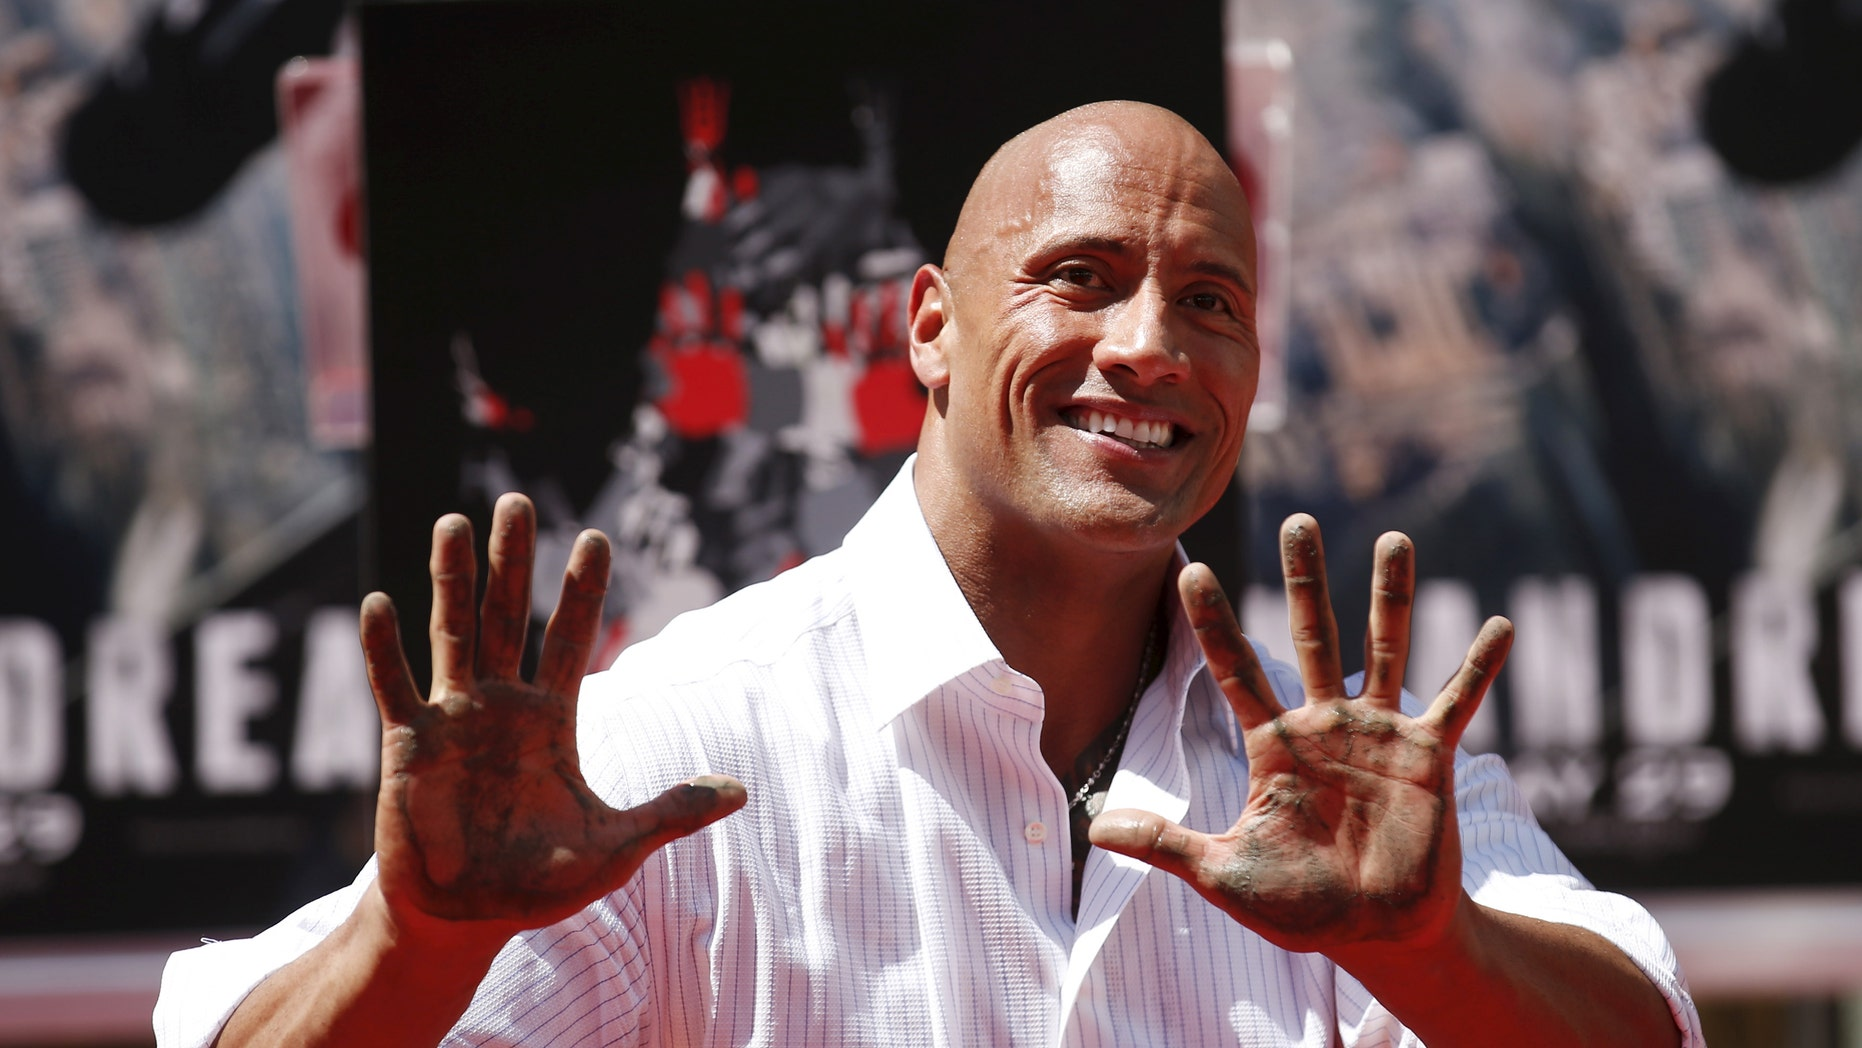 """File photo - Actor Dwayne """"The Rock"""" Johnson poses after putting his hands in cement during his hand and footprints ceremony in the forecourt of the TCL Chinese Theatre in celebration of his movie """"San Andreas,"""" in Hollywood, Calif. May 19, 2015. (REUTERS/Danny Moloshok)"""